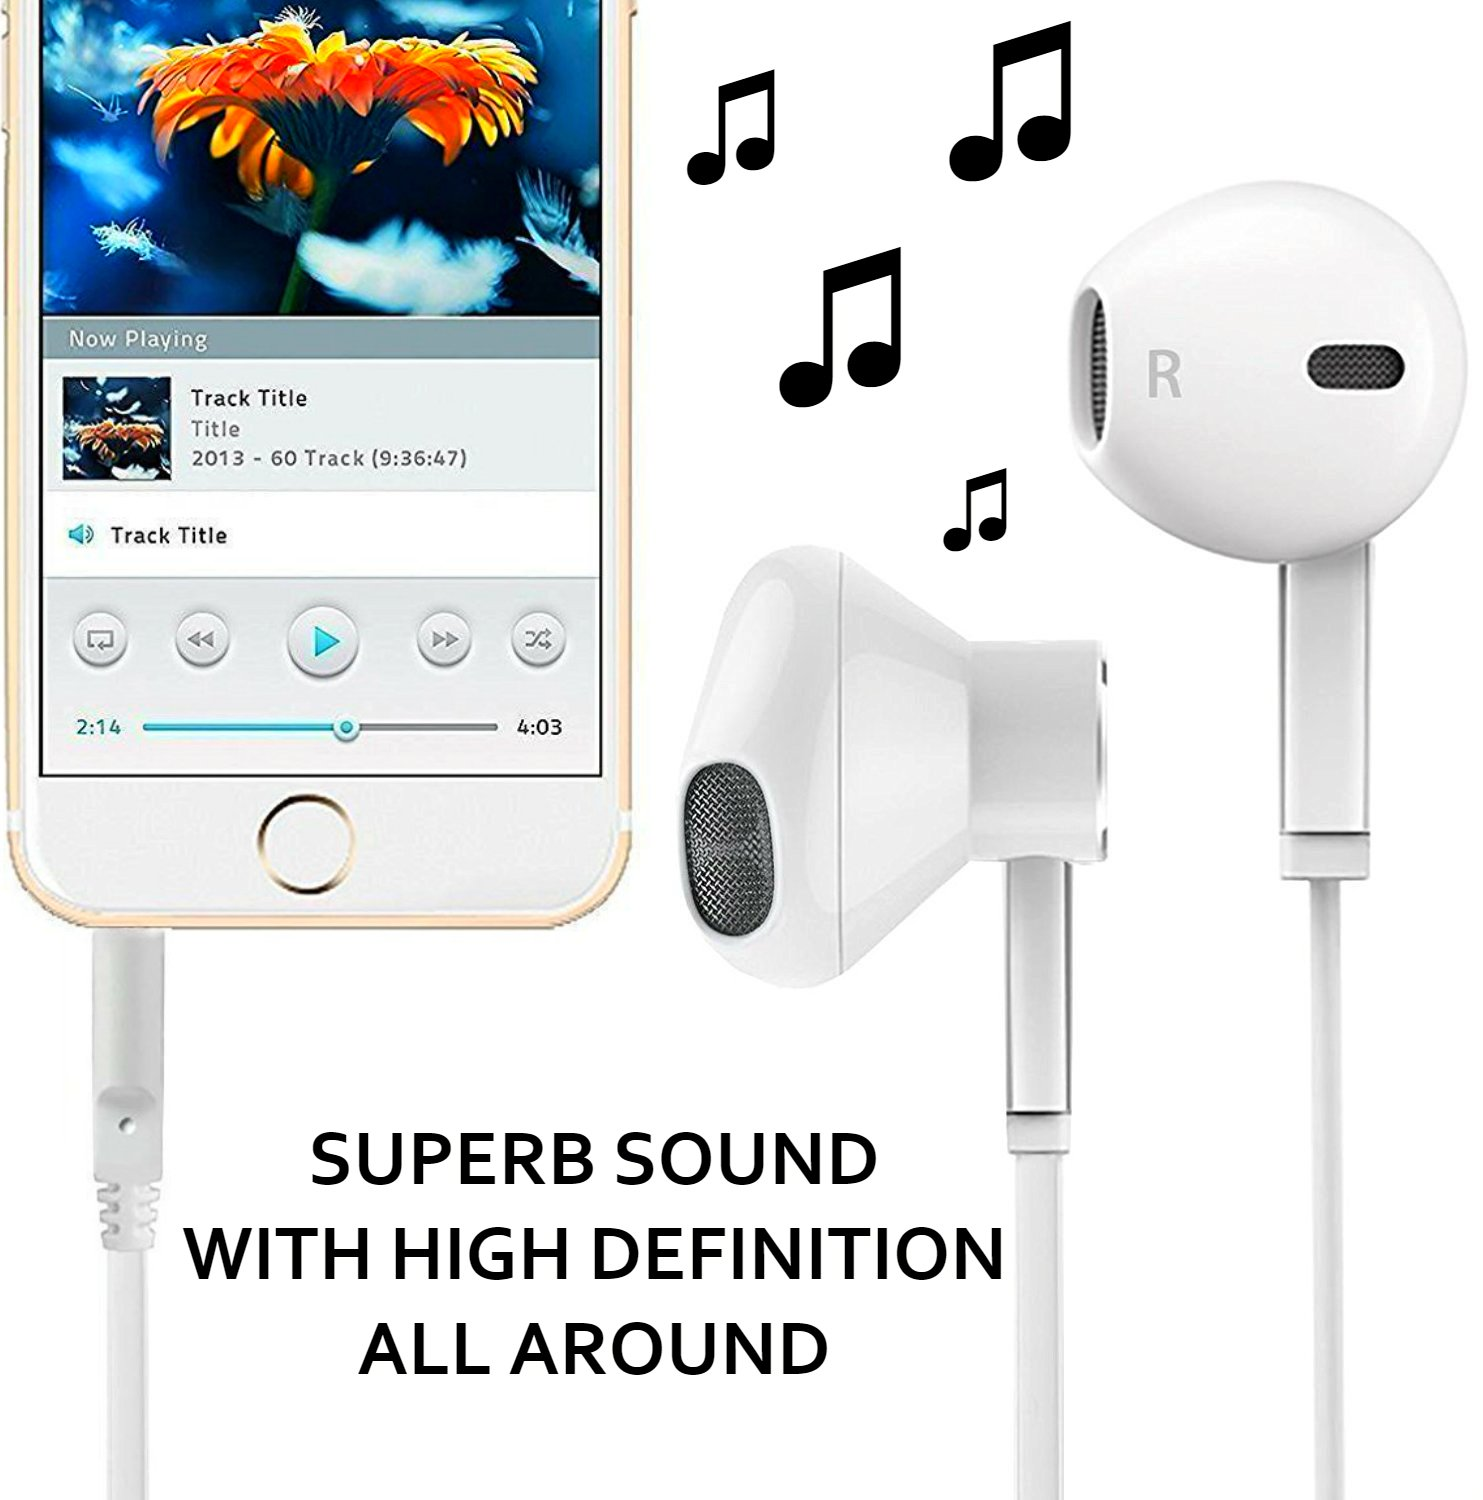 Headphones with Microphone, Certified PowerBoost In-Ear 3.5mm Noise Cancelling Sport Stereo Earphones Headset for iPhone iPad iPod Laptop Tablet Android LG HTC Smartphones (White) 3 PACK by Power Boost (Image #2)